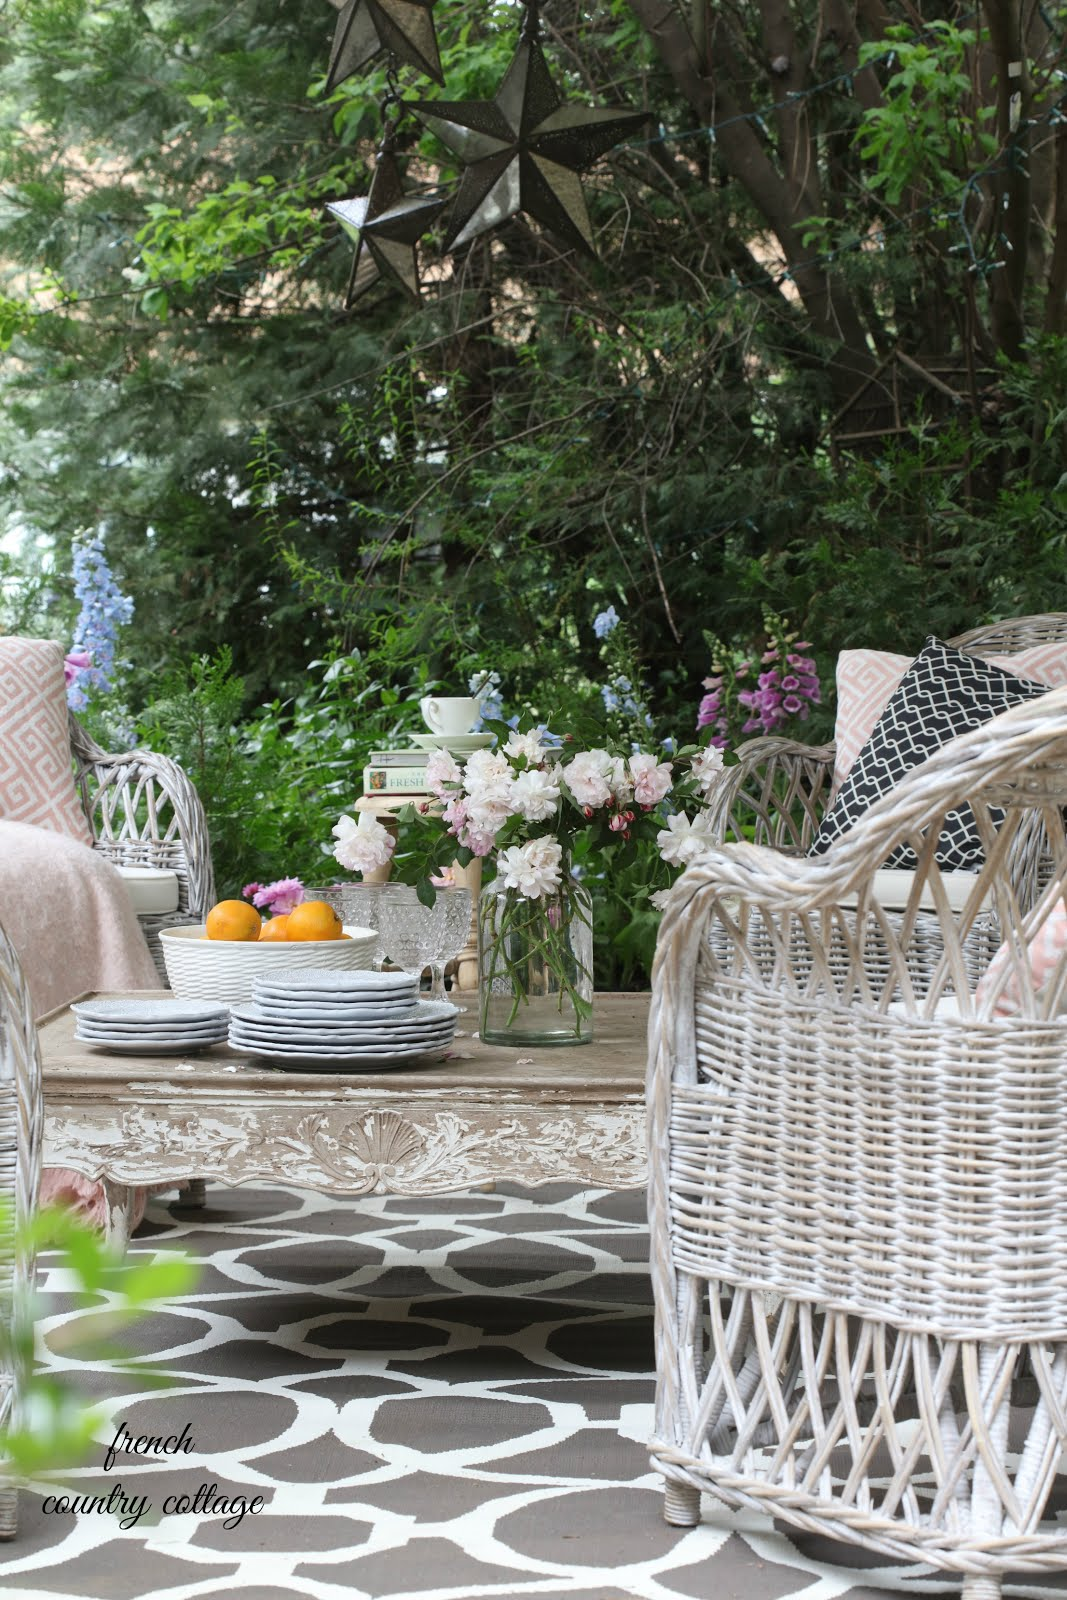 Inspirational How to create rustic cottage charm on your patio FRENCH COUNTRY COTTAGE